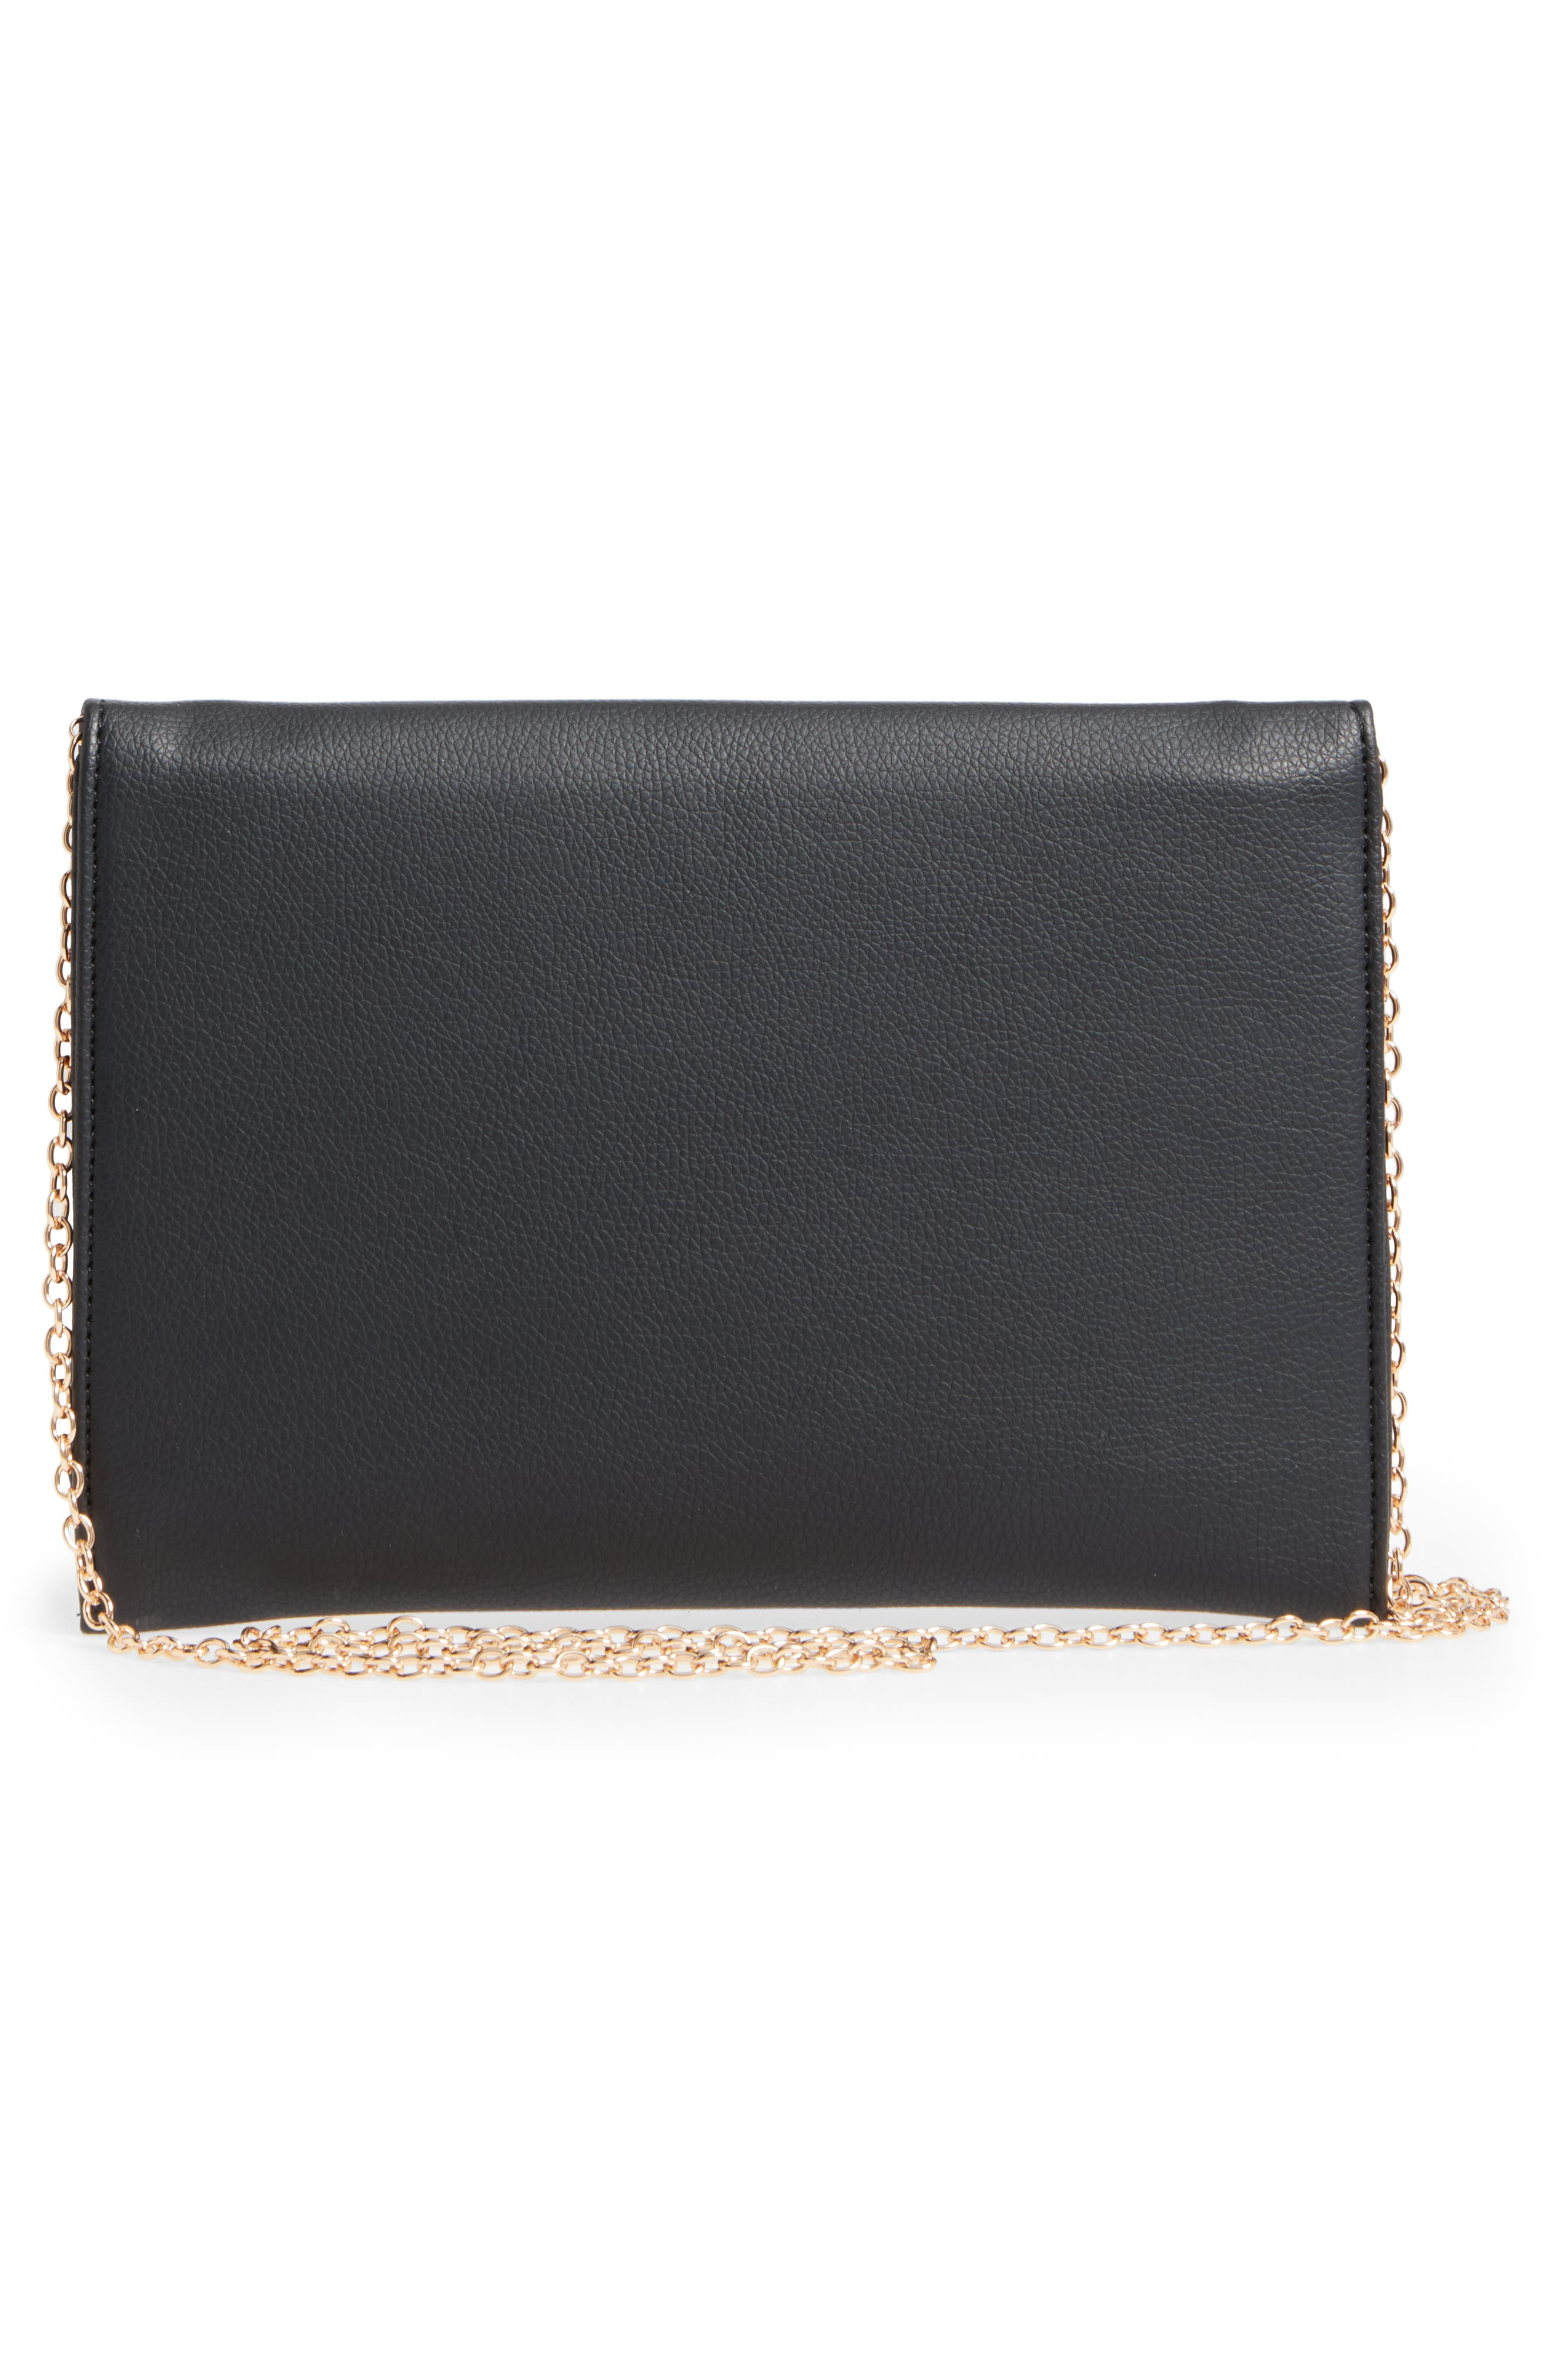 NATASHA COUTURE,                             Natasha Chain Clutch,                             Alternate thumbnail 3, color,                             001